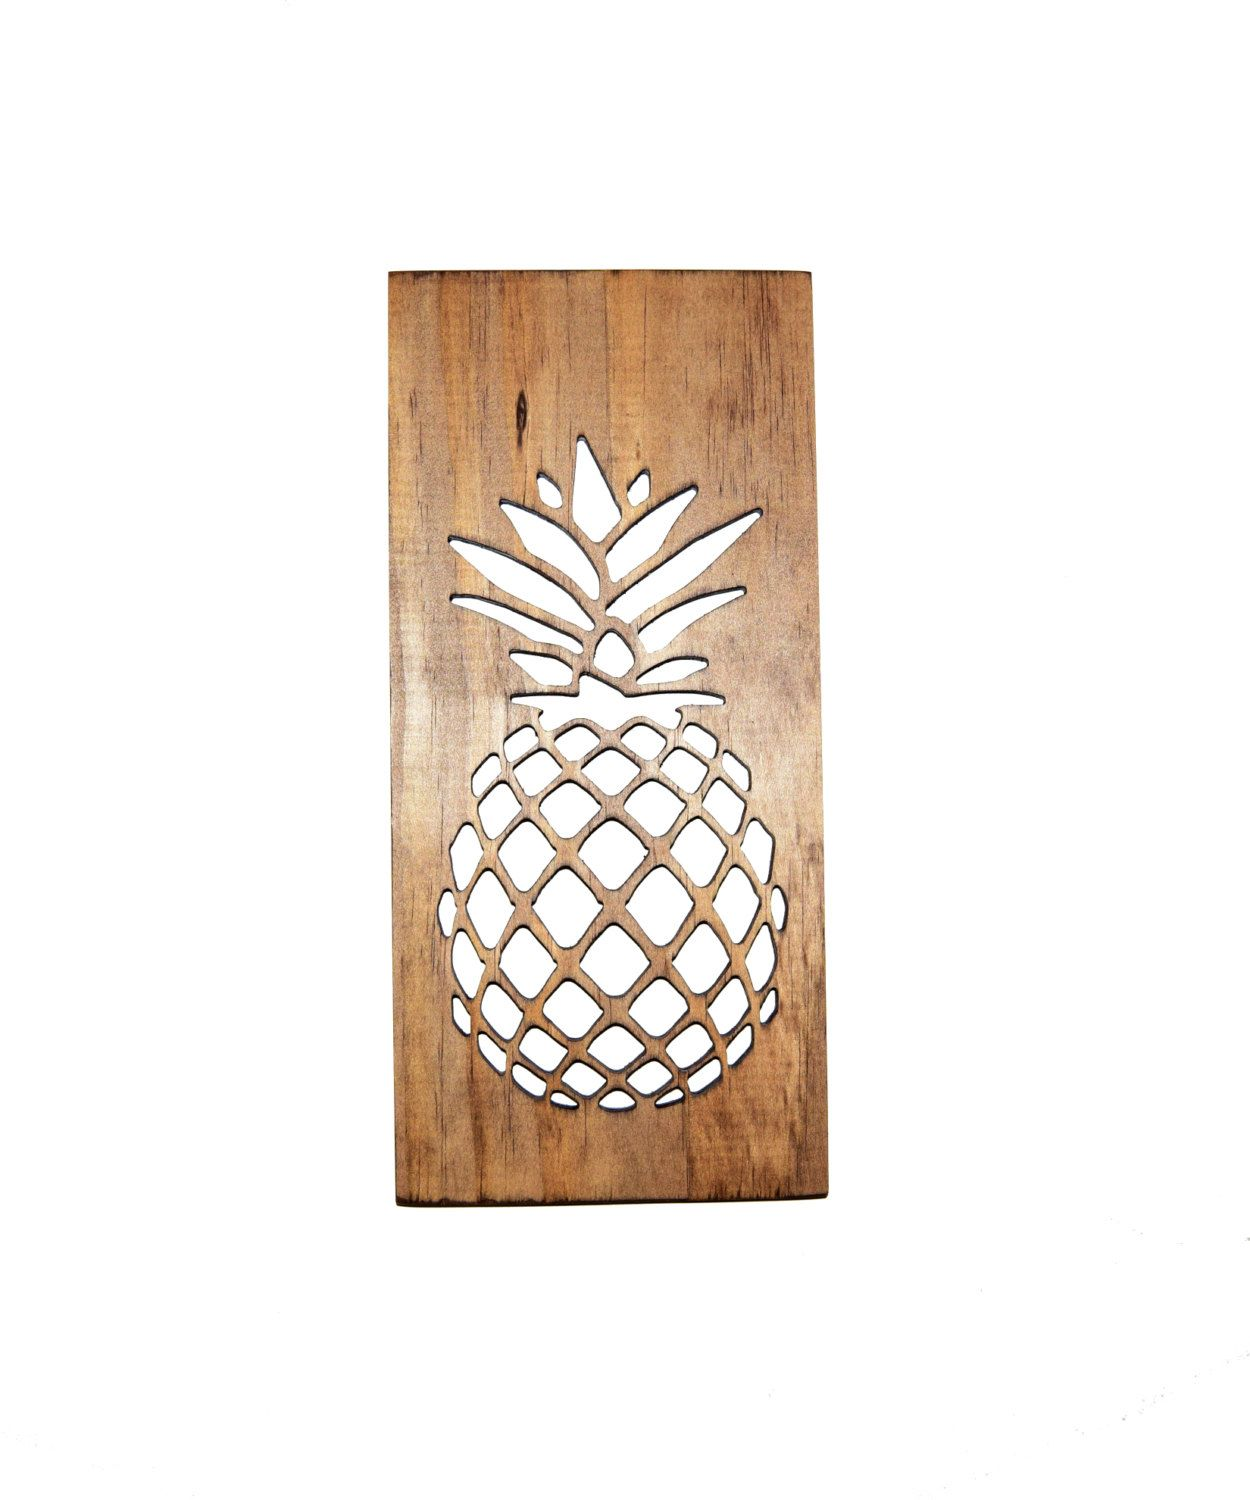 Pin by imtech on Laser cutting Pinterest Pineapple kitchen